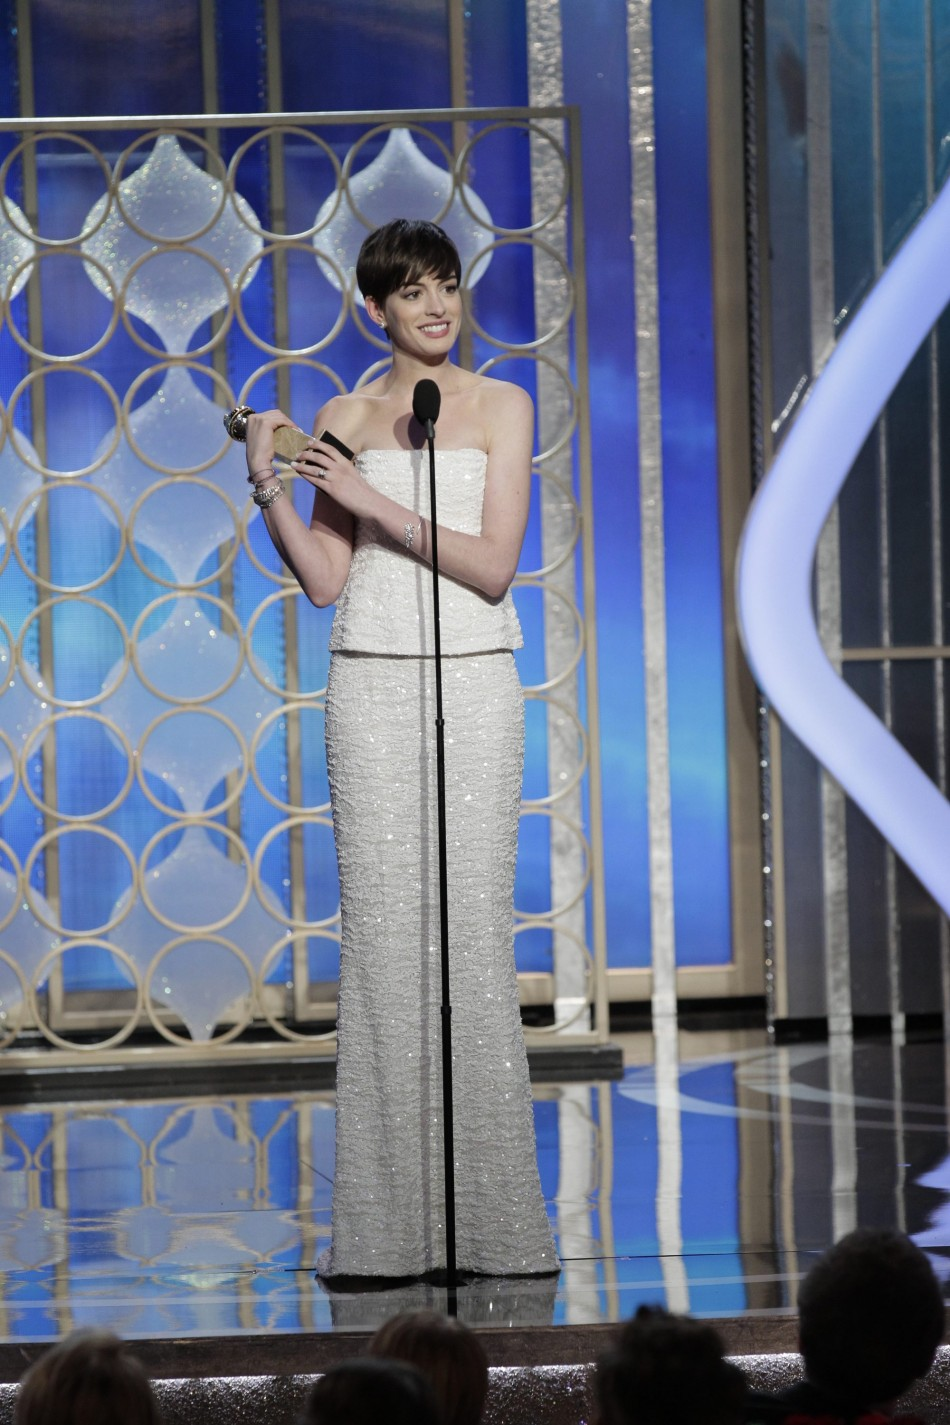 Anne Hathaway on stage at the Golden Globe Awards in Beverly Hills